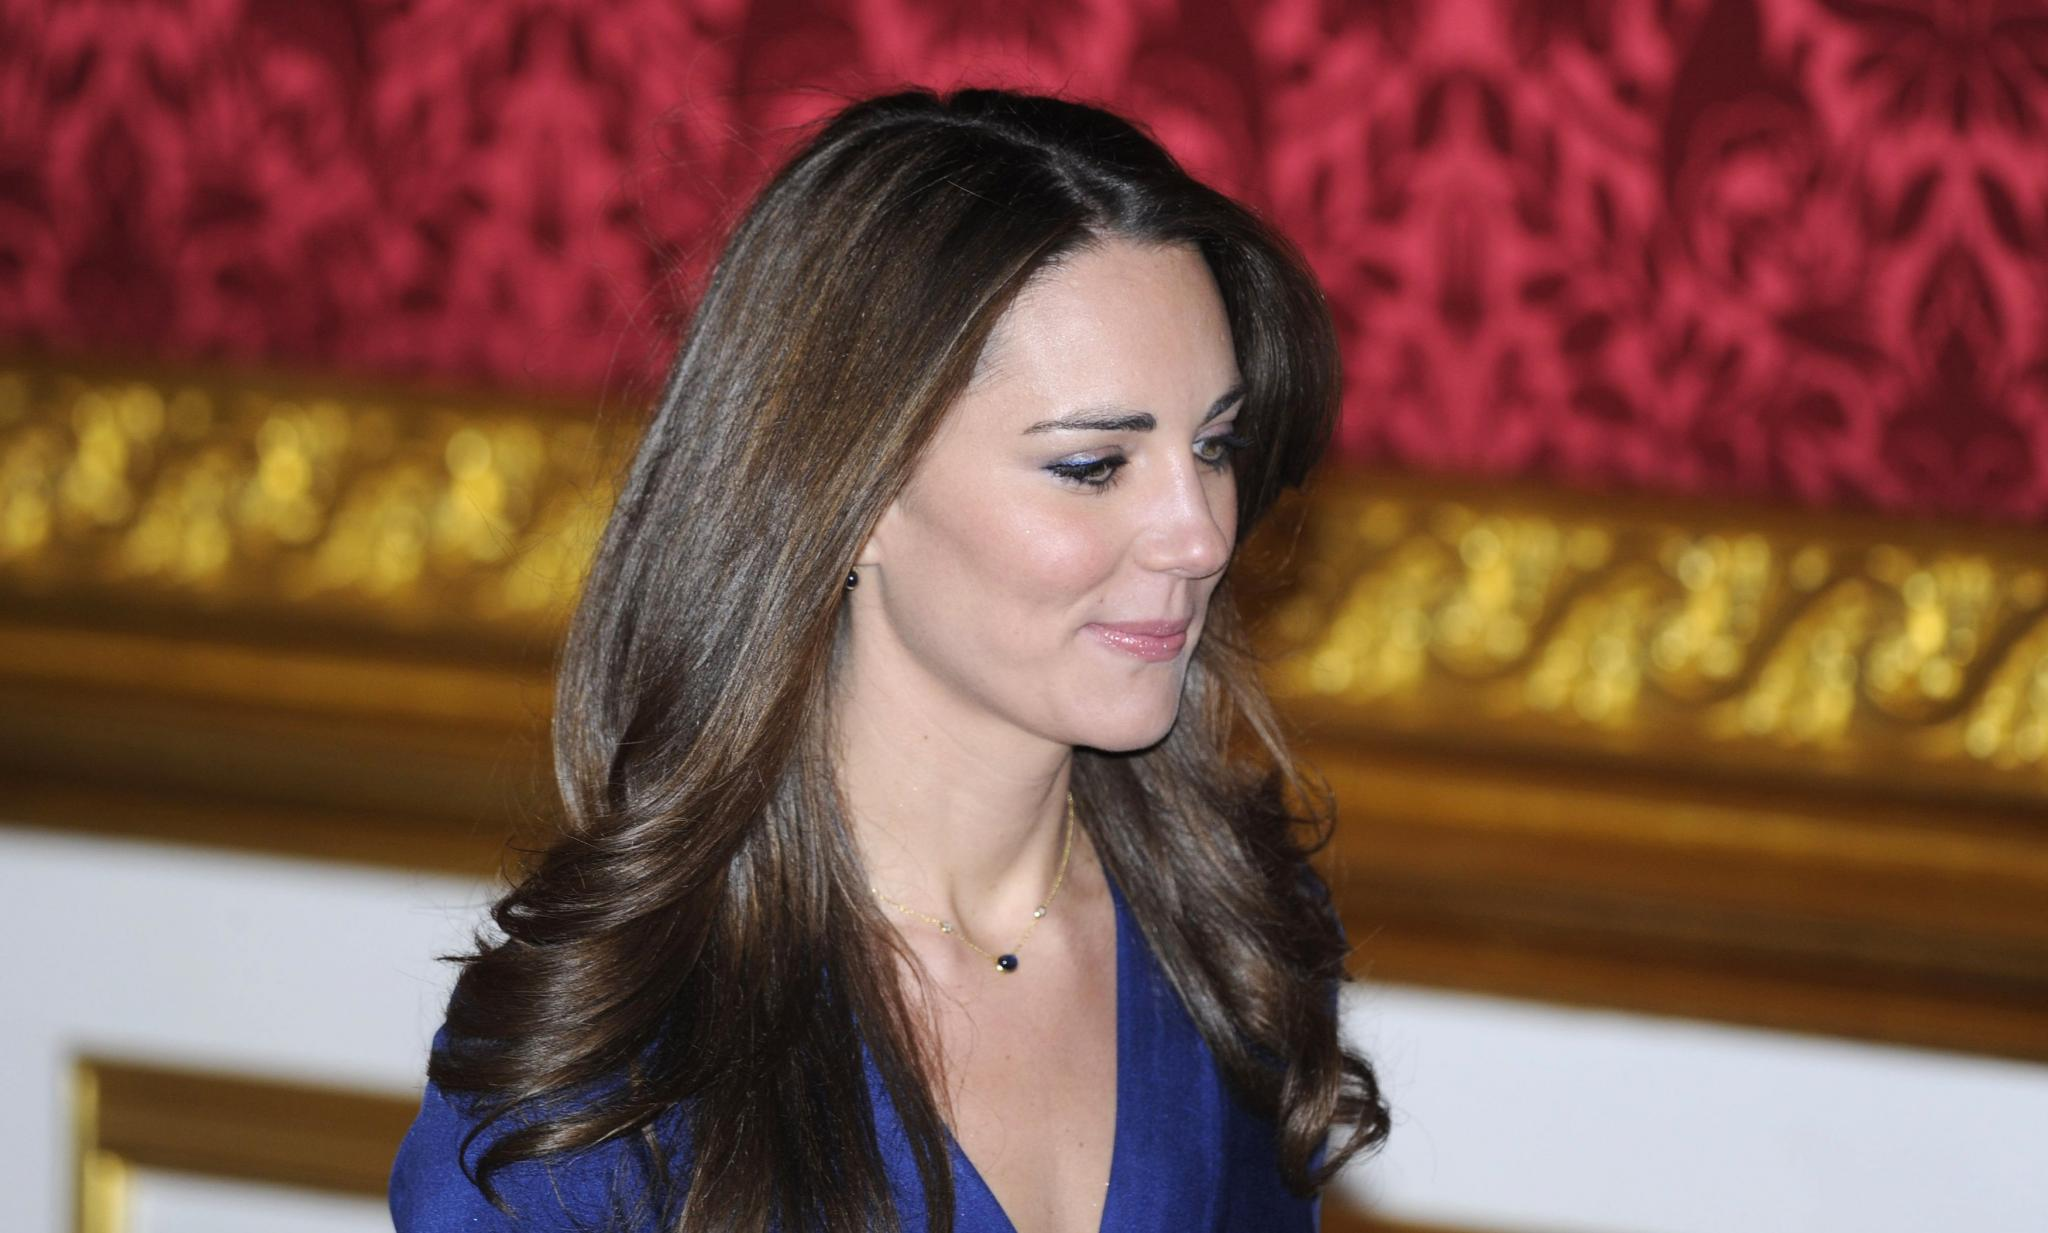 The fiancee of Britain's Prince William, Kate Middleton, prepares to pose for a photograph in St. James's Palace in central Lond